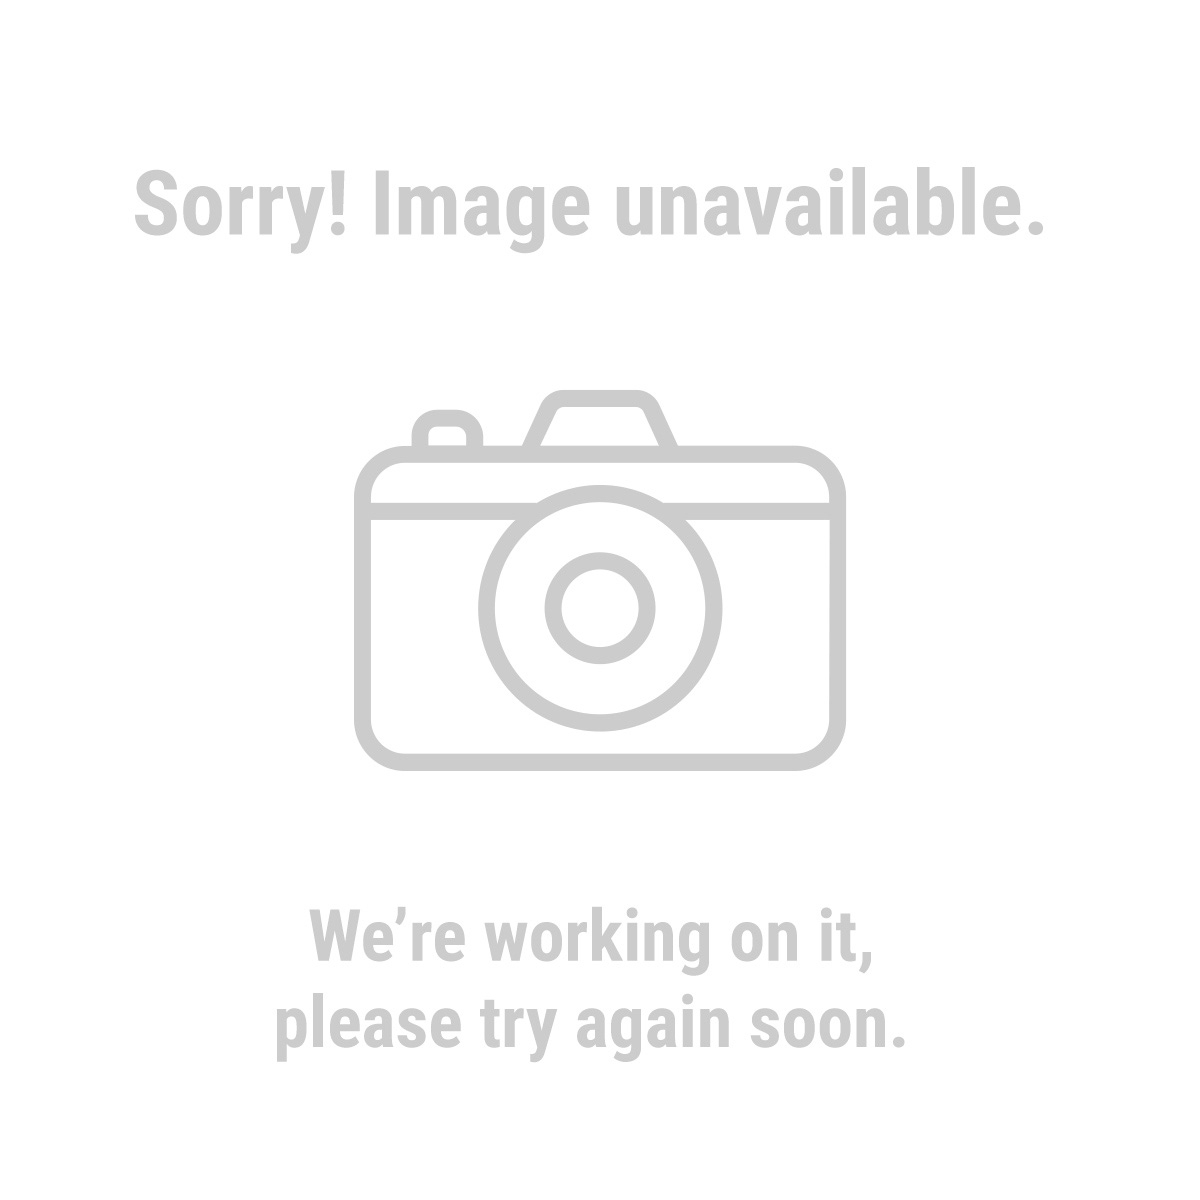 10-in-1 Woodworking Machine Item # 96067 - The SawdustZone